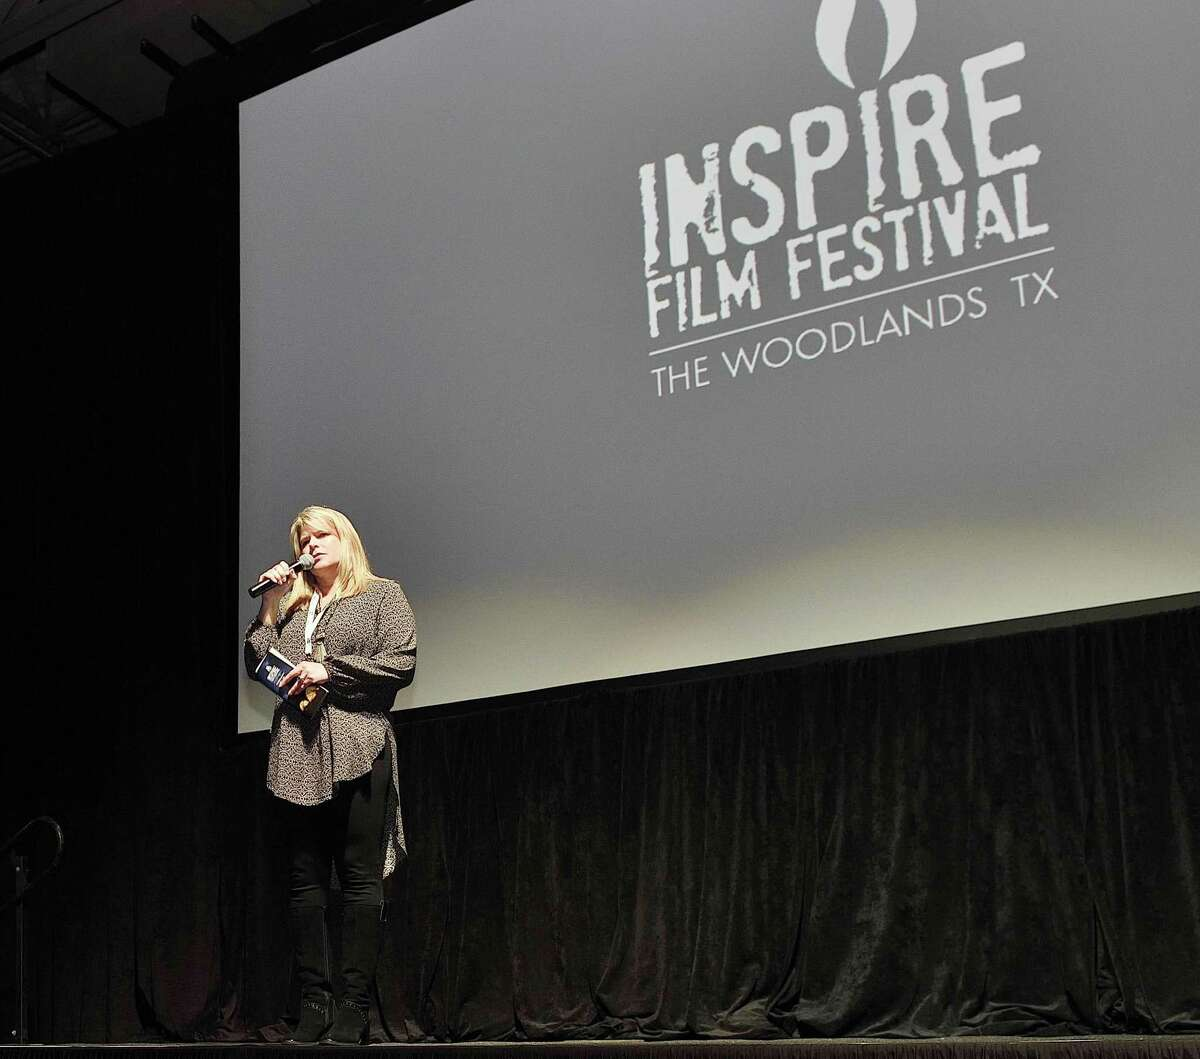 Visit The Woodlands on Wednesday approved a $25,000 advertising partnership with the Inspire Film Festival, which is set to return in February.